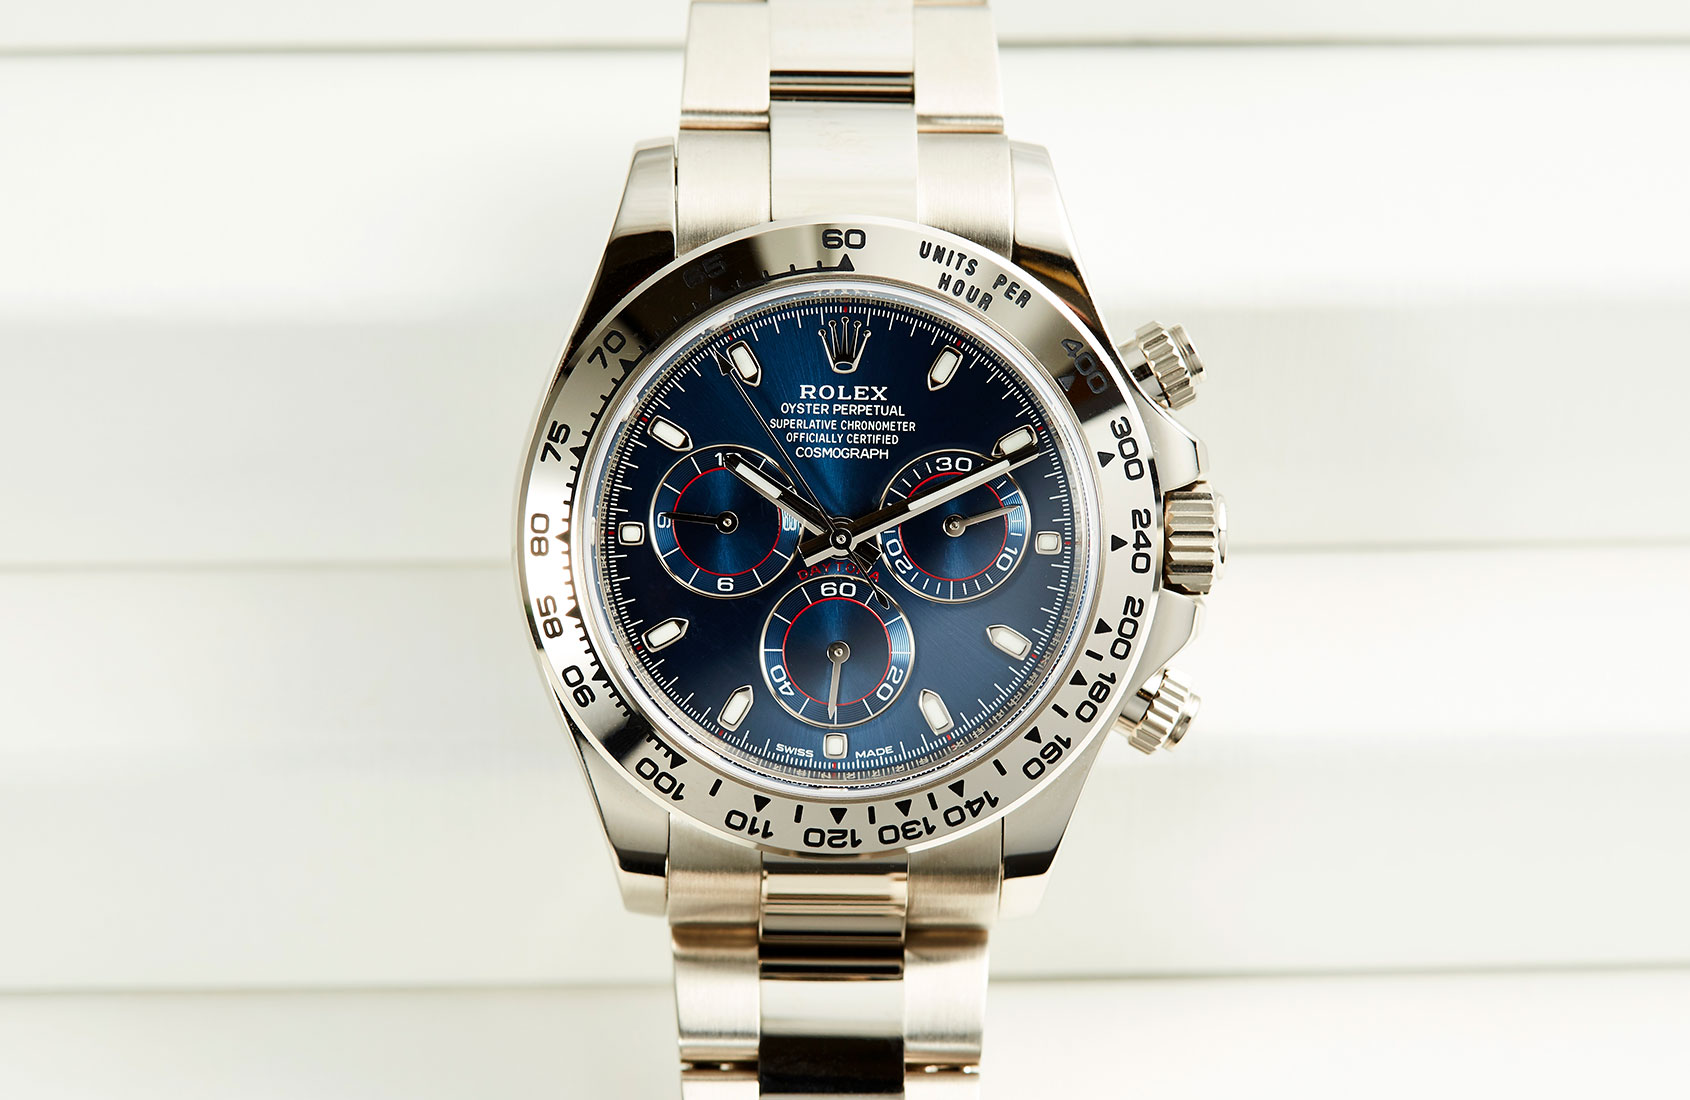 The heavy-hitting Rolex Daytona in white gold with blue dial (ref. 116509)